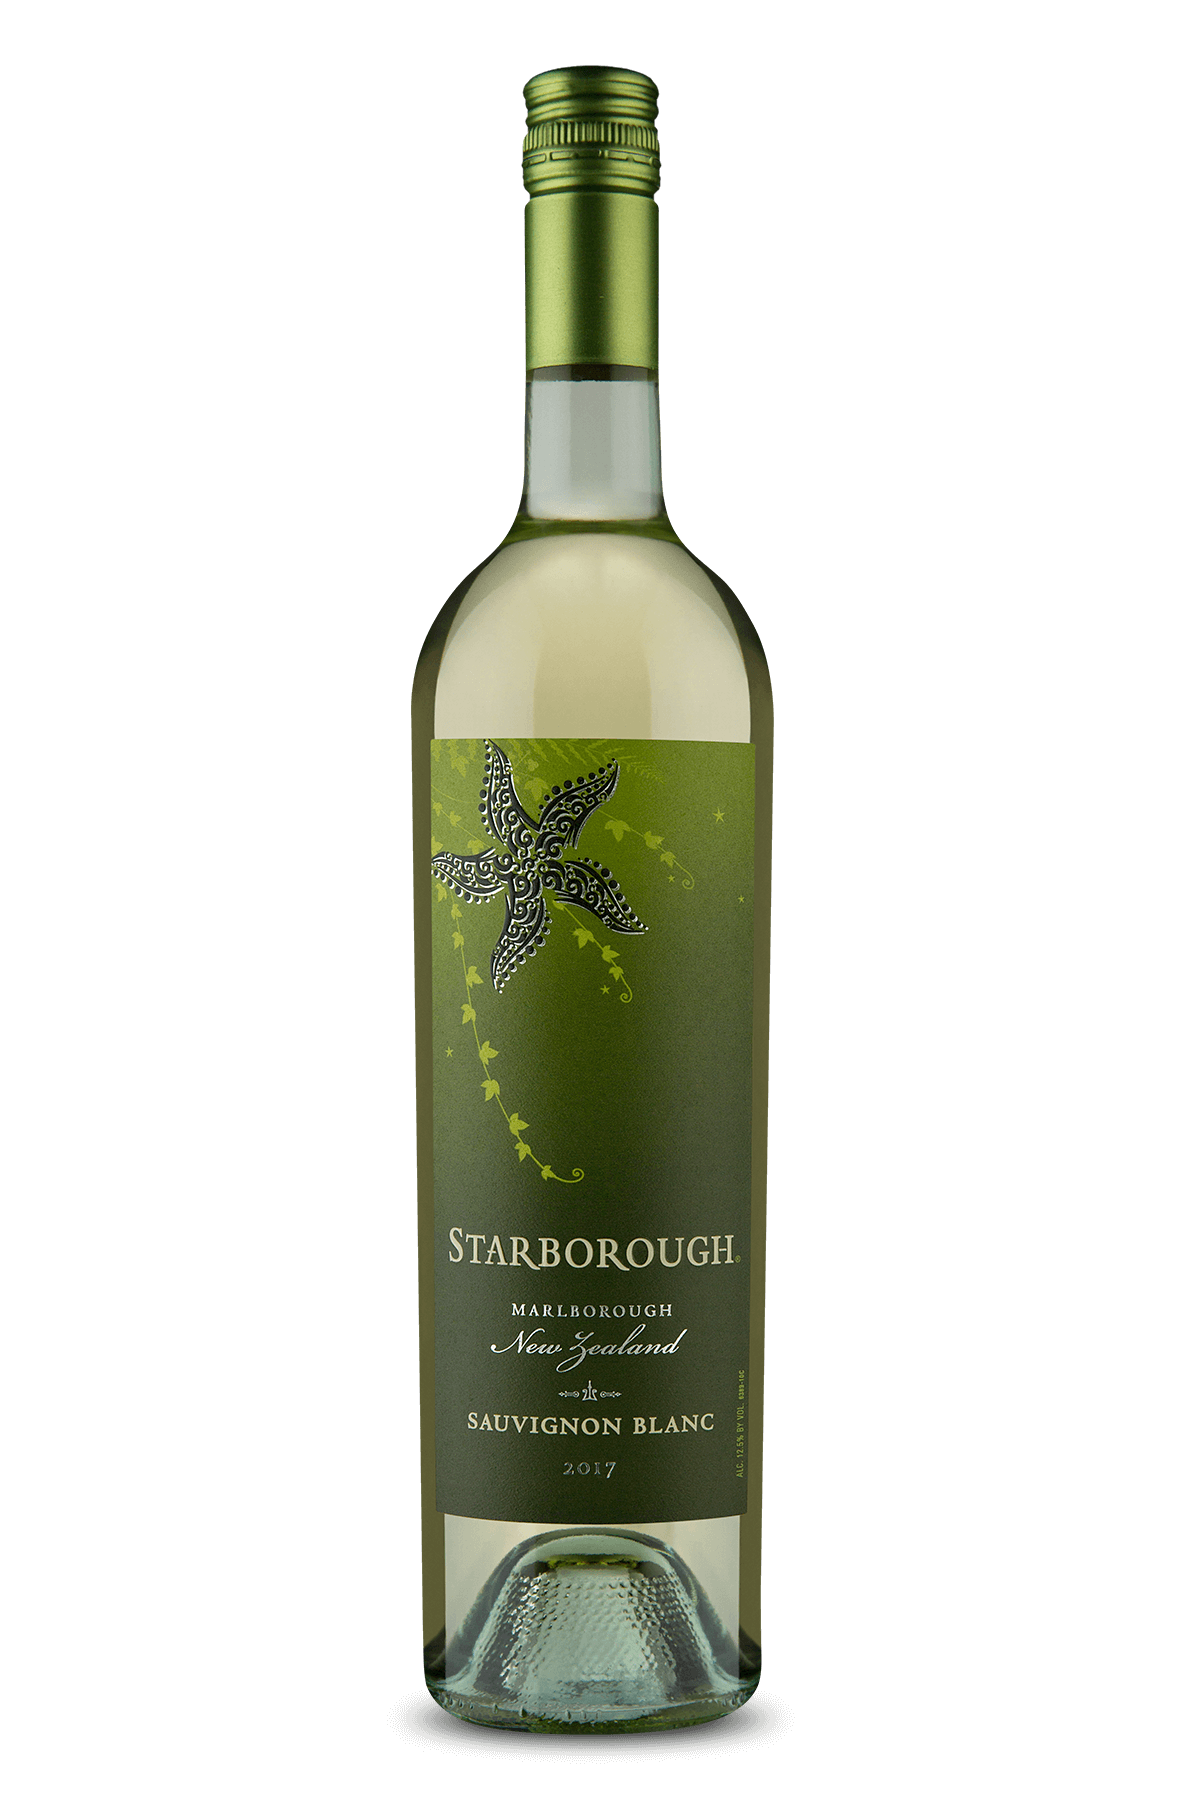 Starborough Marlborough Sauvignon Blanc 2017